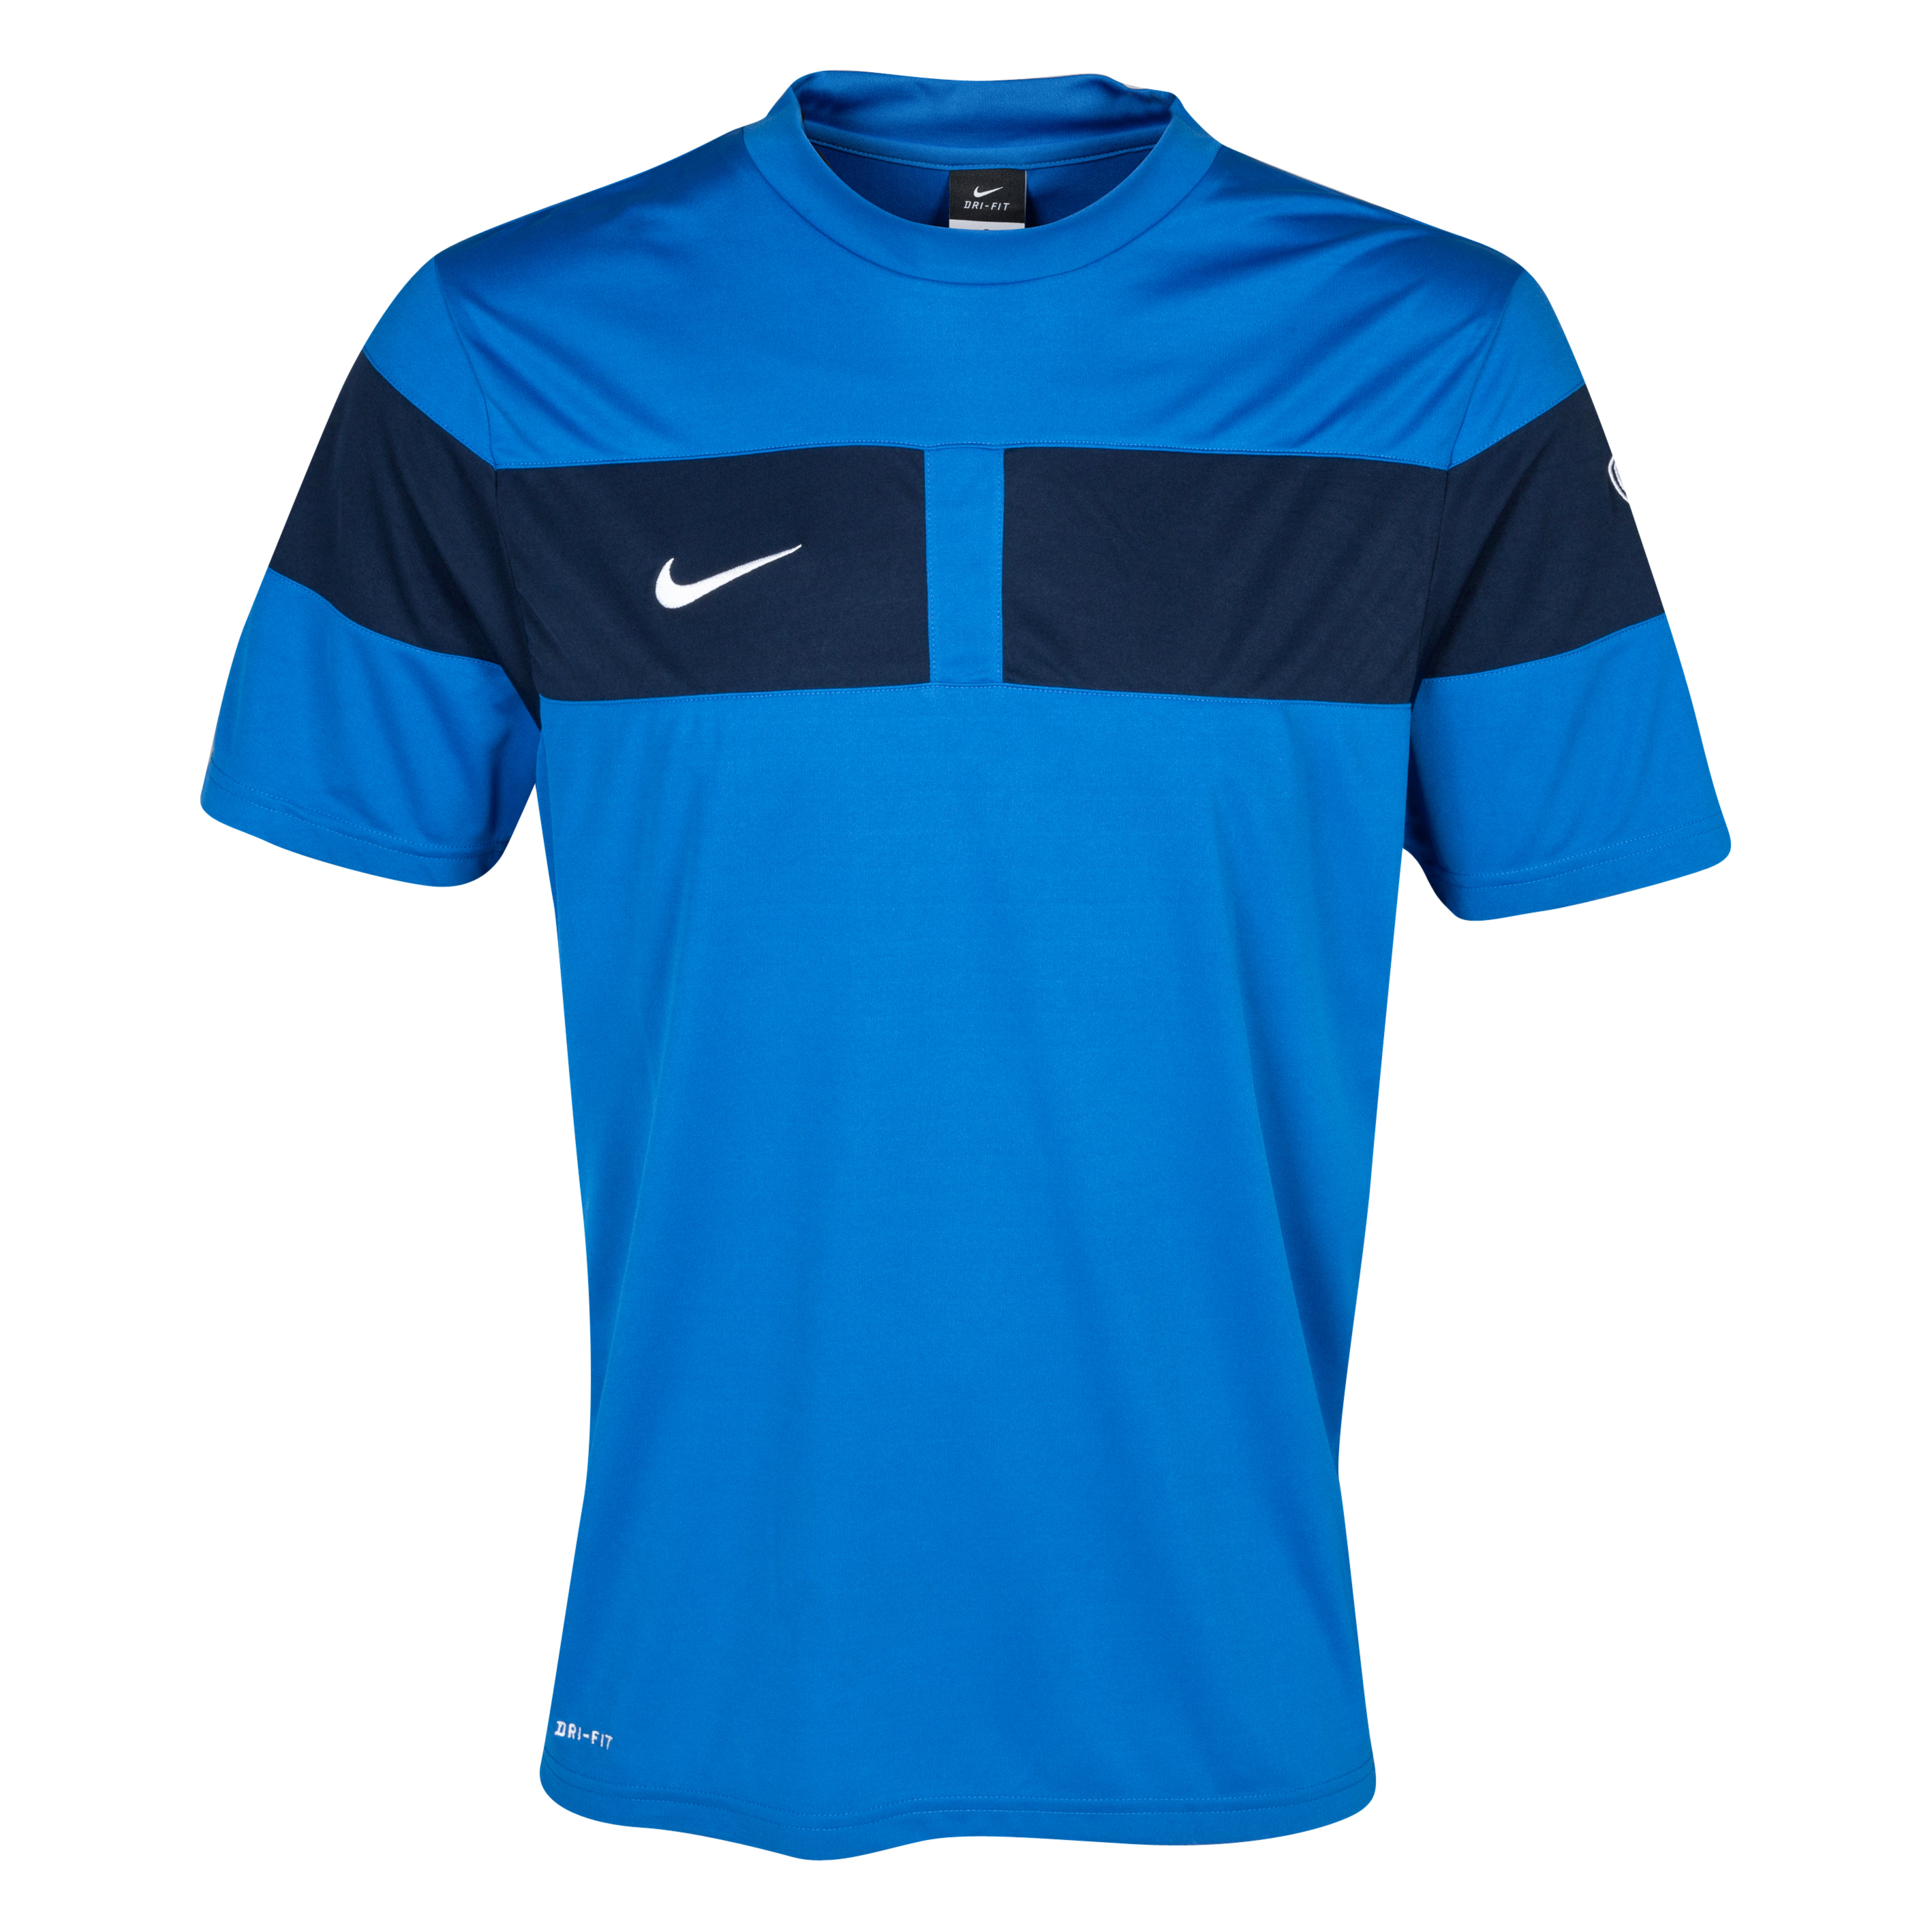 Nike Club Training Top  - Royal Blue/Obsidian/White